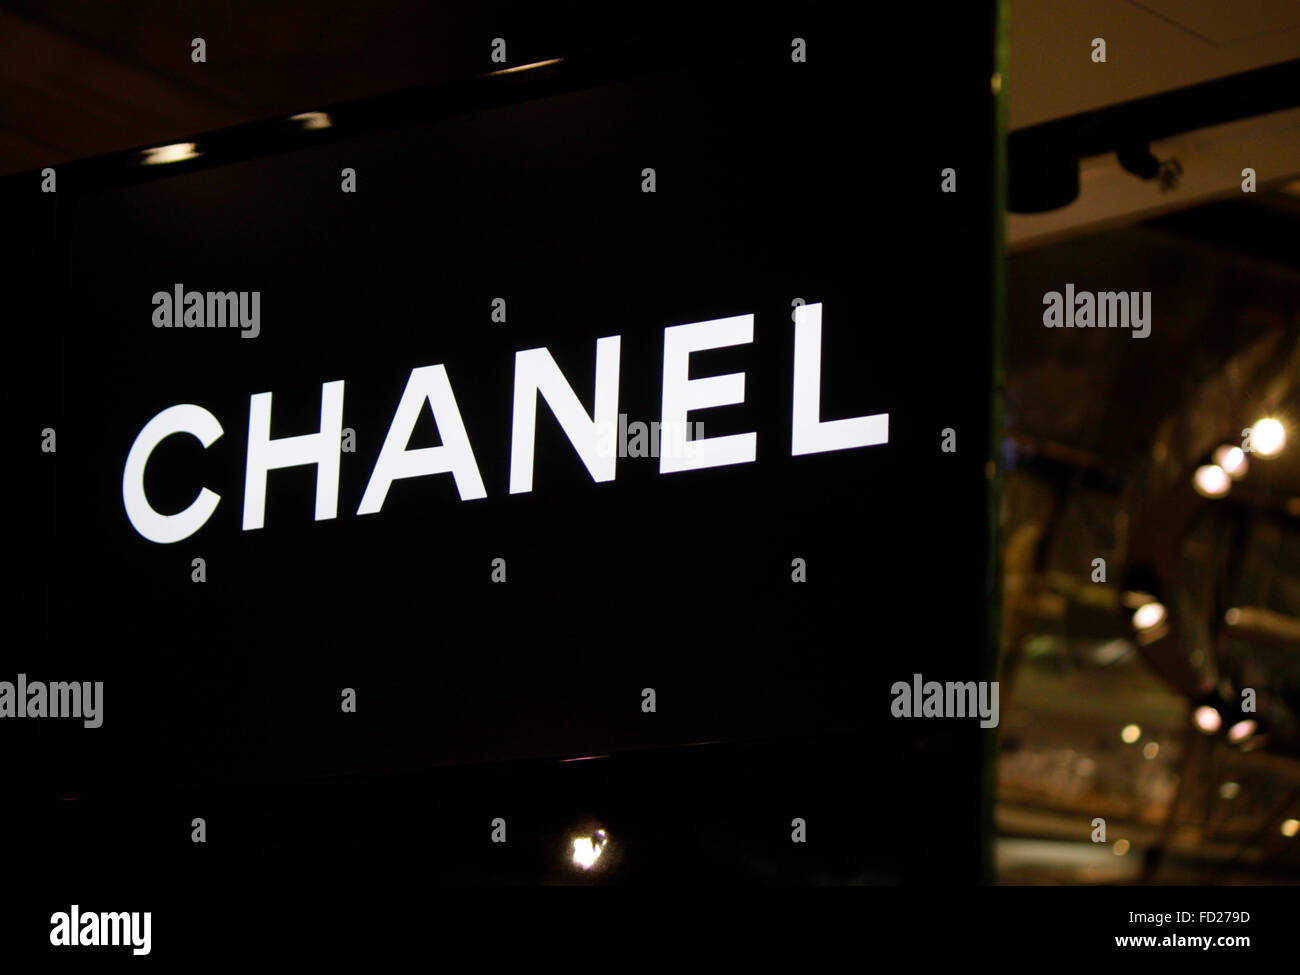 Chanel Berlin markenname chanel berlin stock photo royalty free image